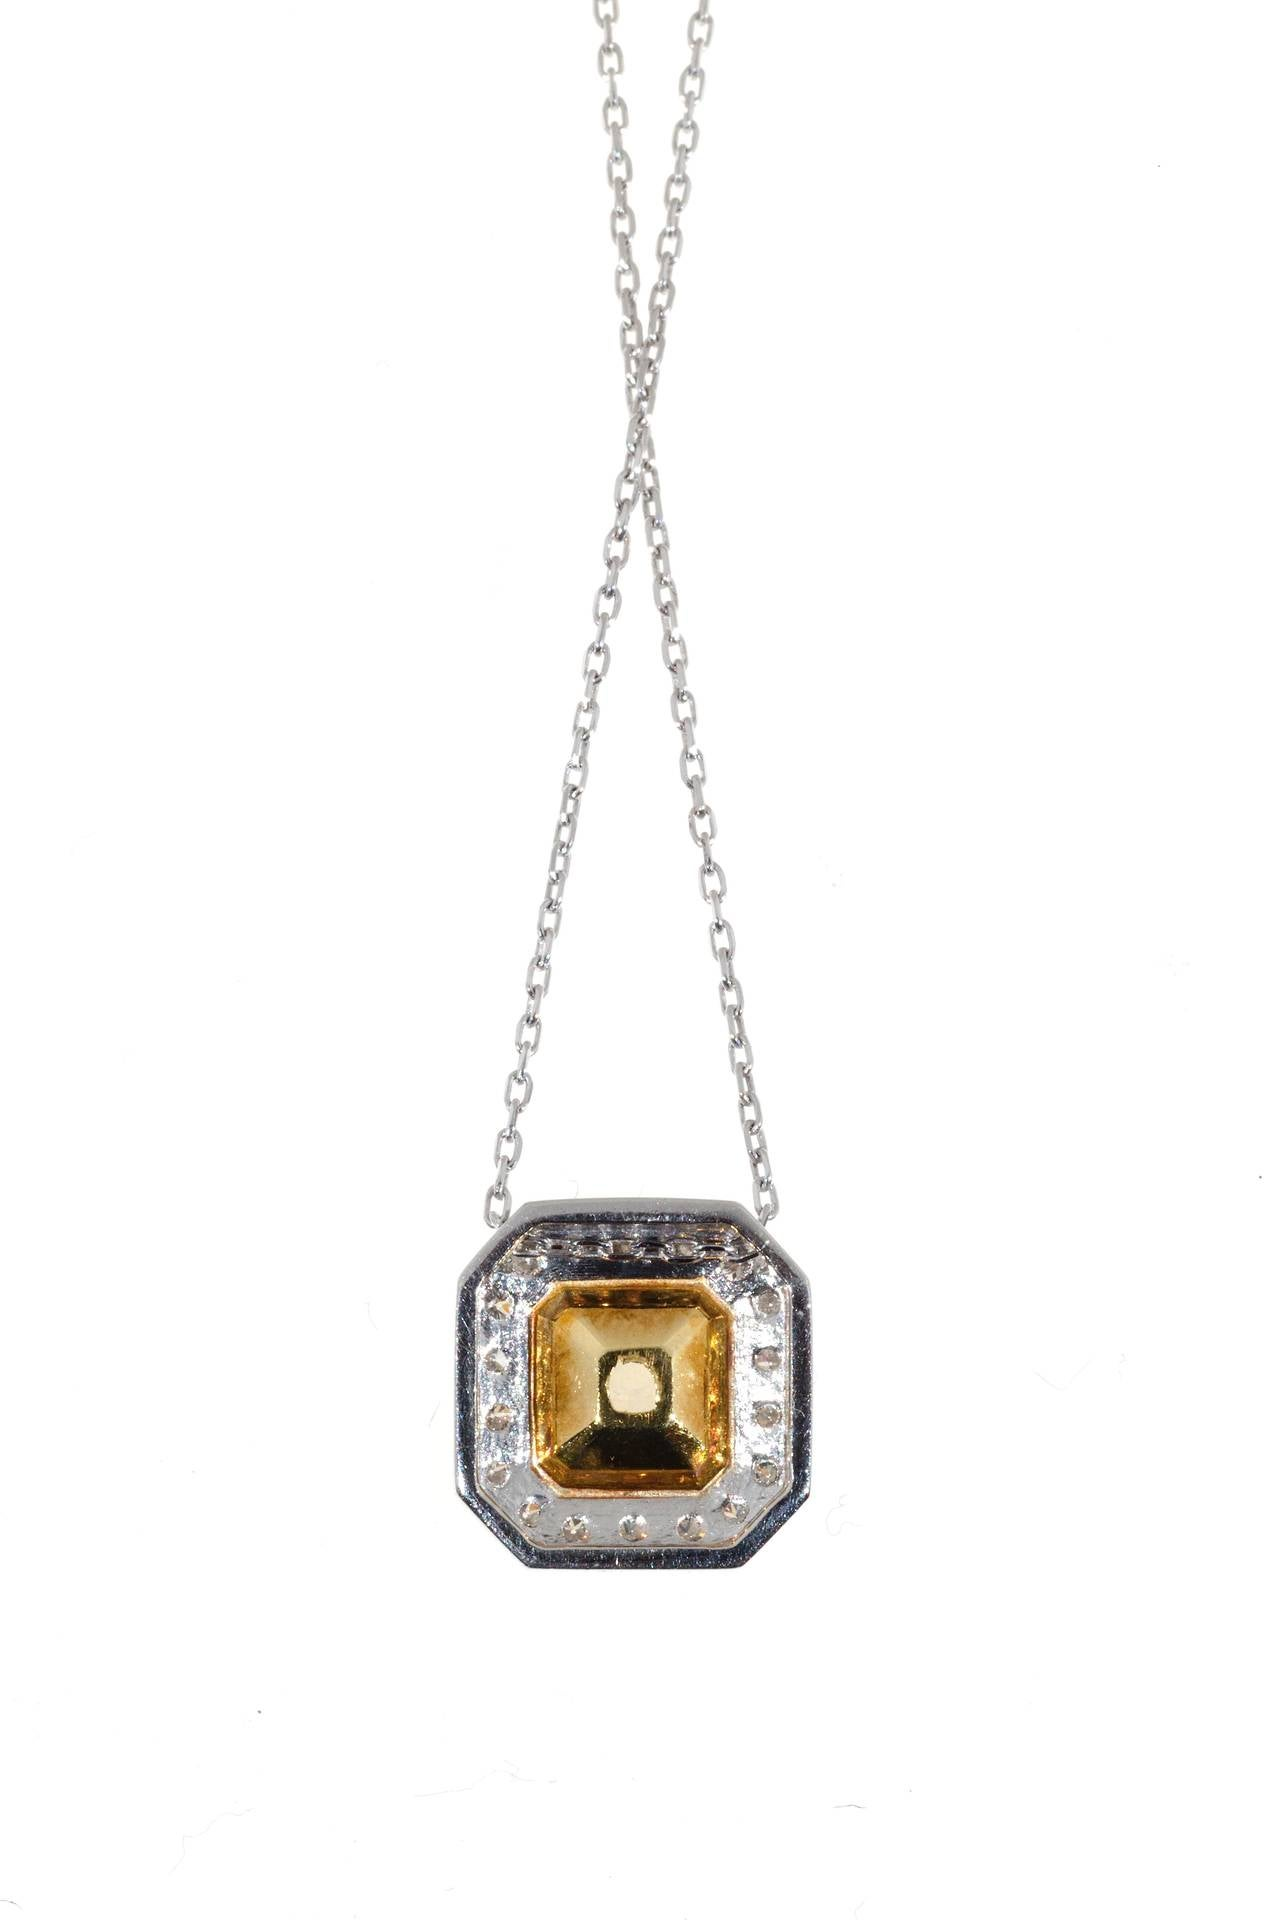 Peter Suchy Designs Yellow Canary Diamond Gold Platinum Pendant Chain In Good Condition For Sale In Stamford, CT